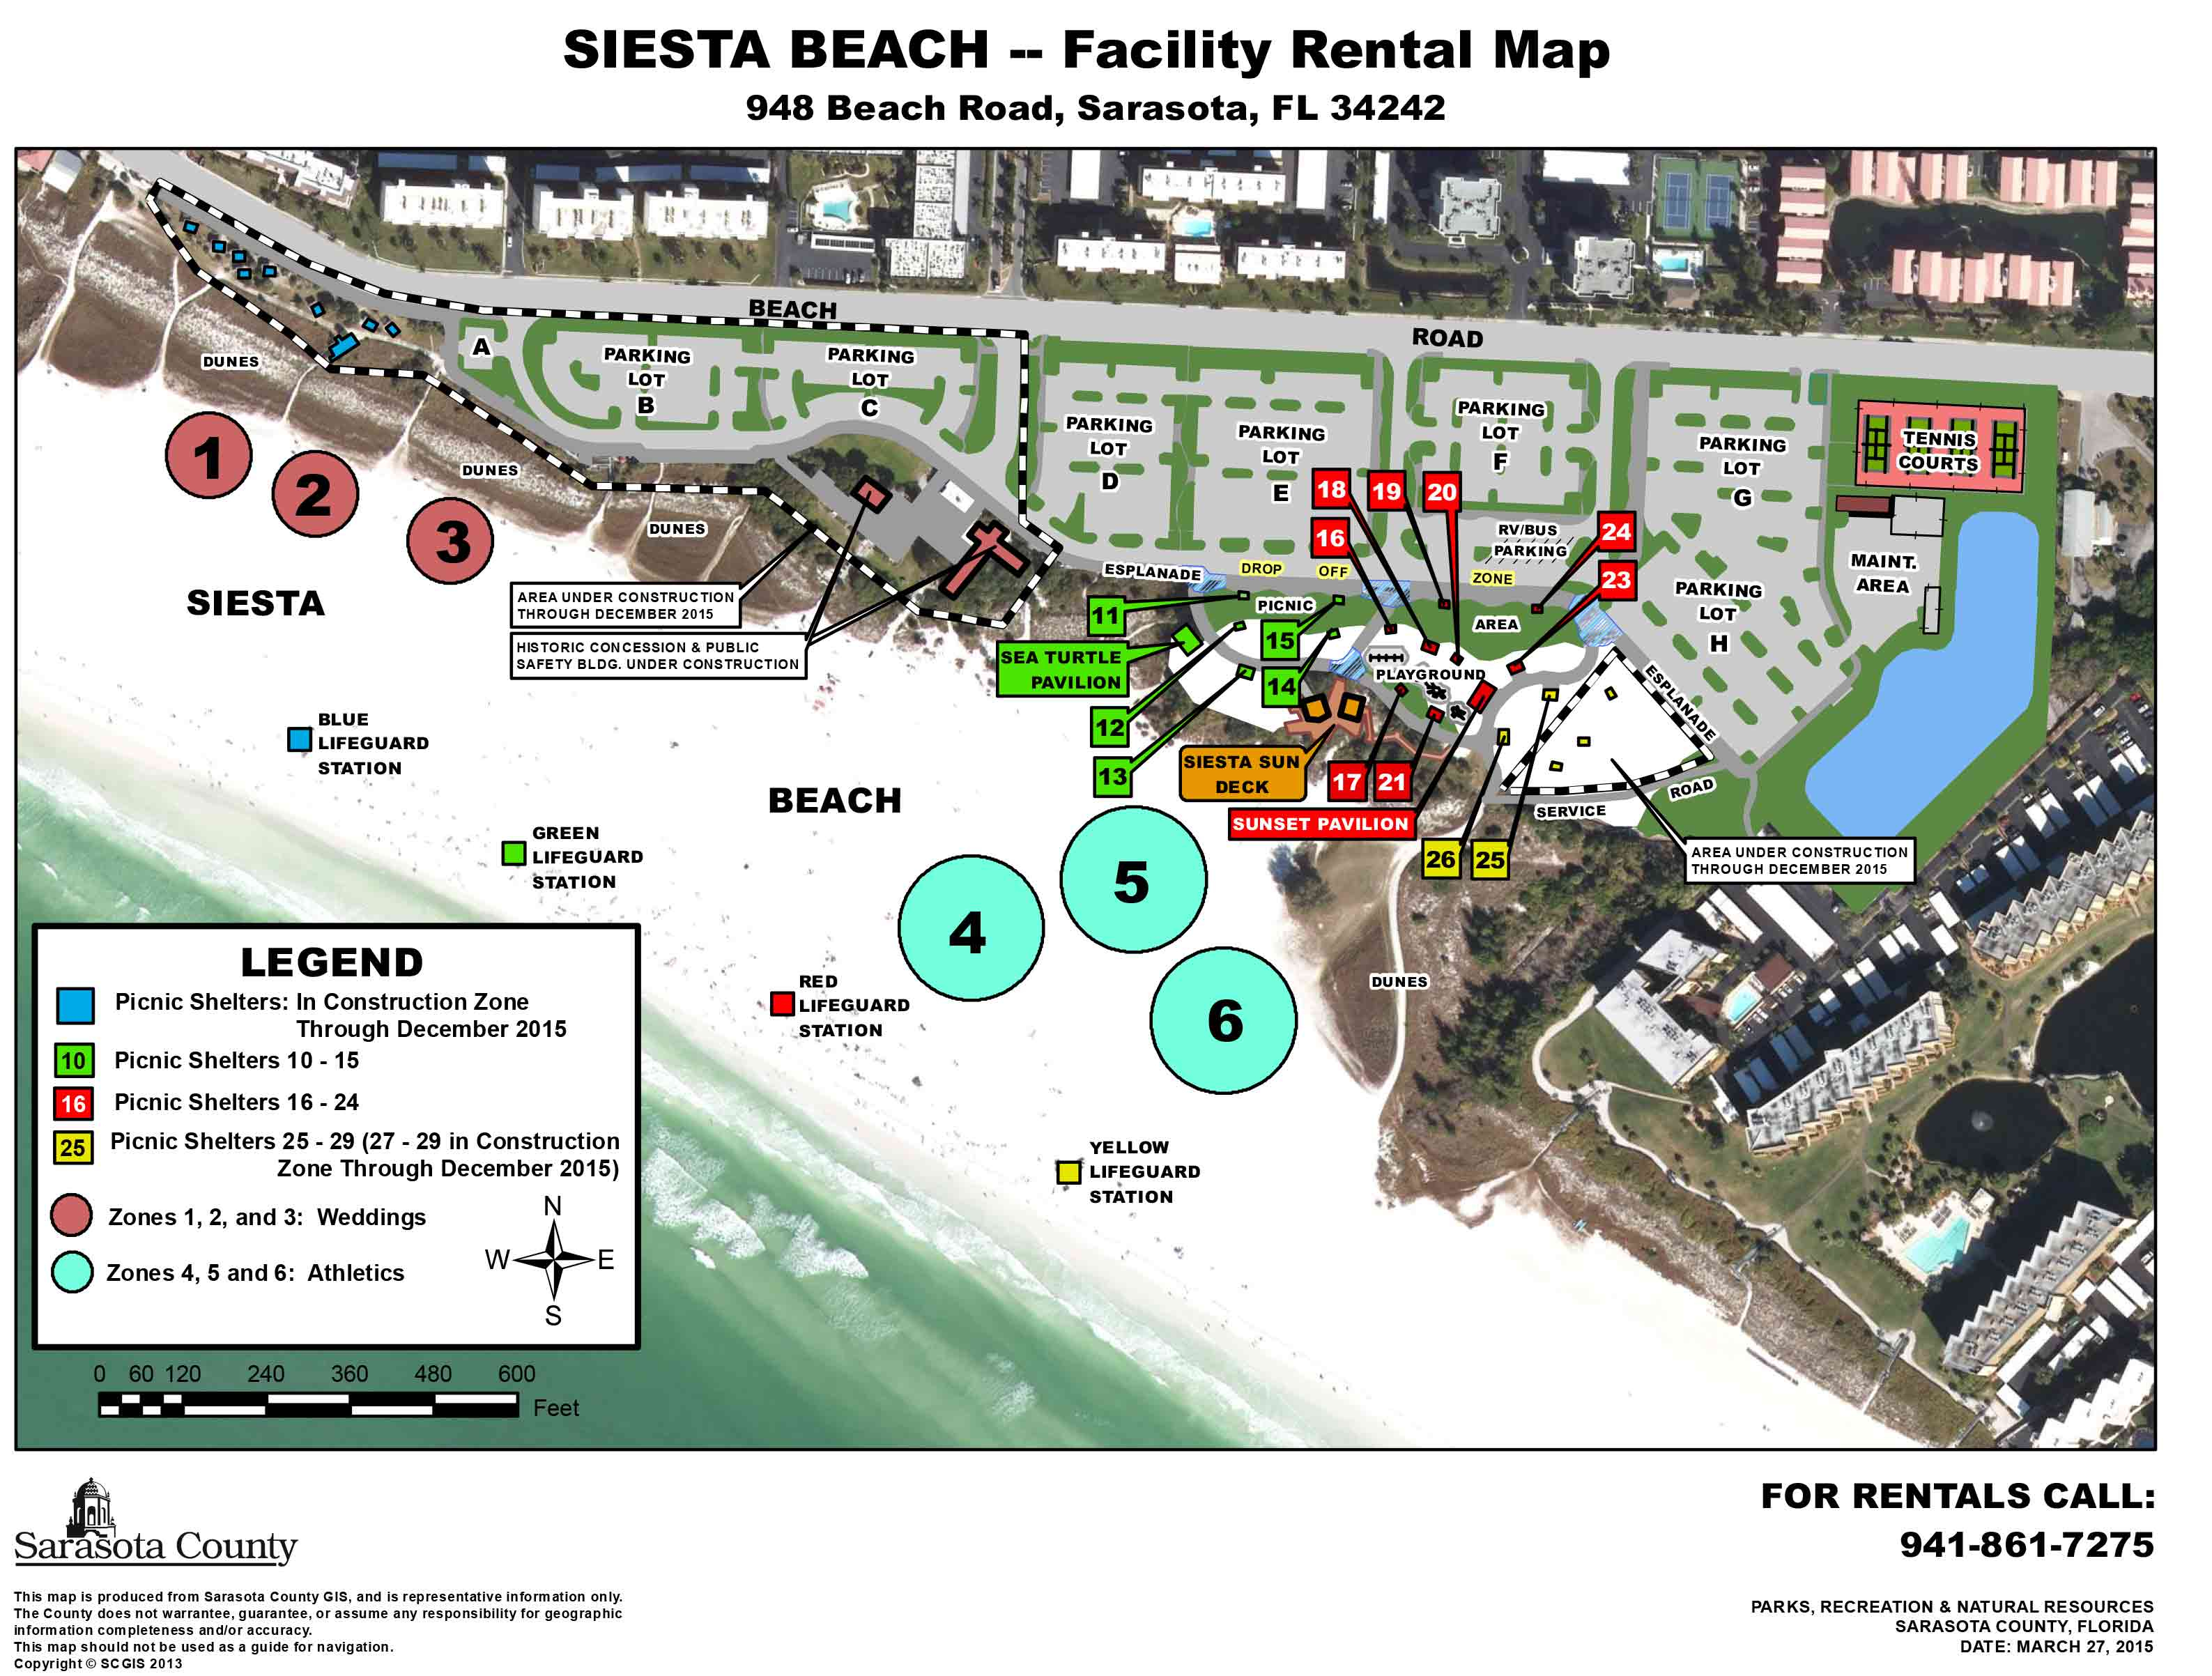 Siesta Key Beach Wedding Location In Sarasota - Siesta Key Florida Map